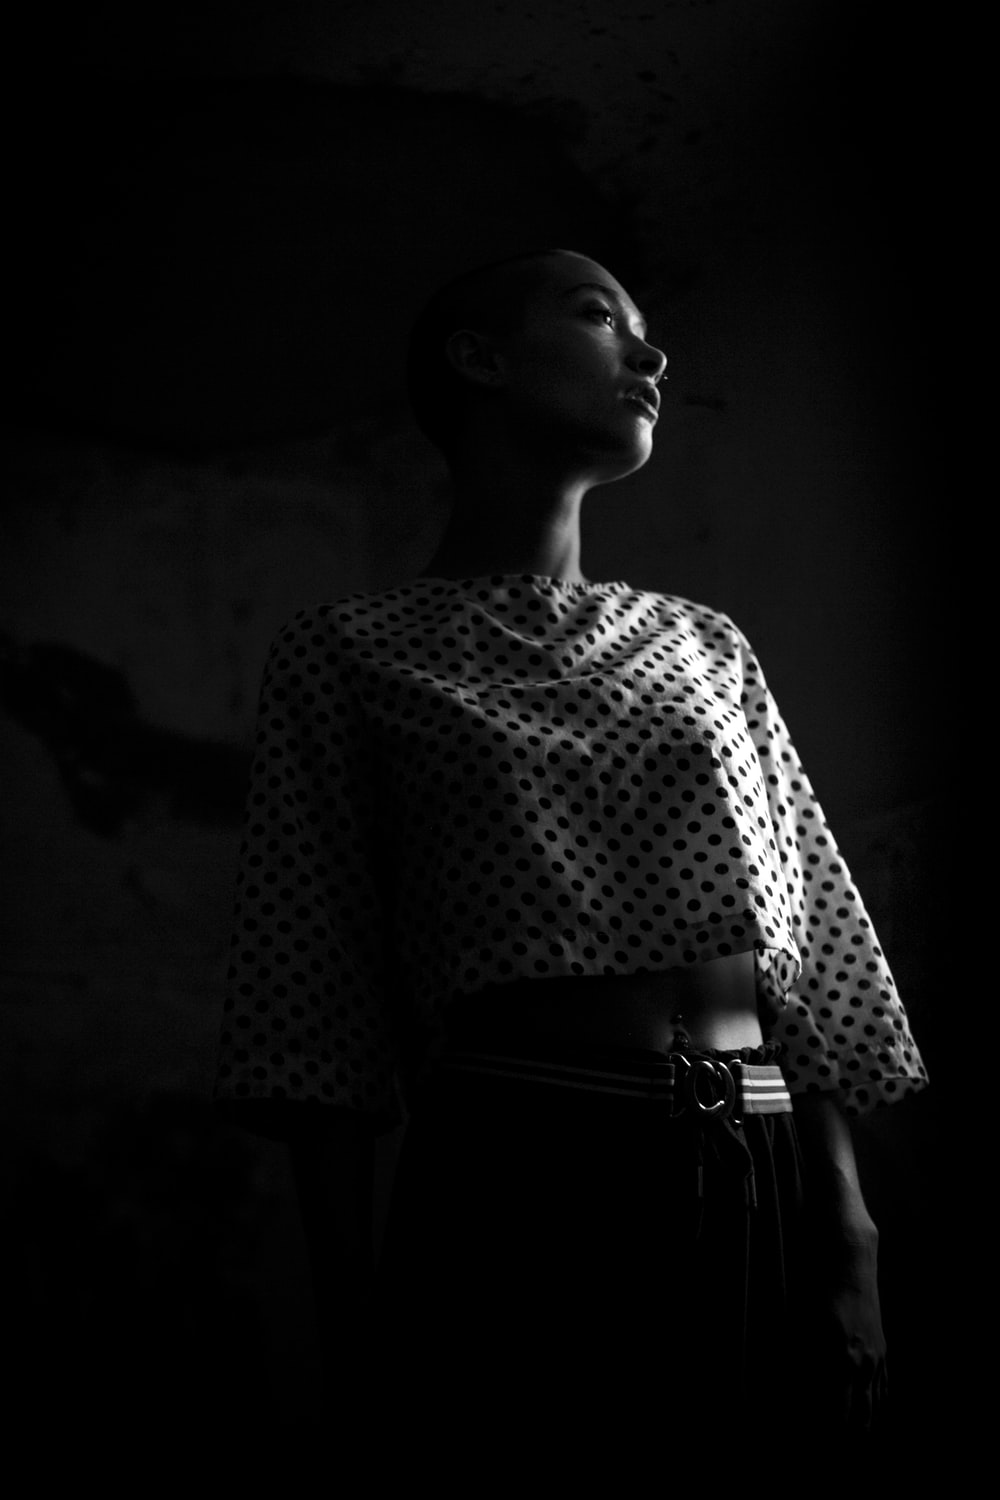 low-angle photo of woman wearing black and white polka-dot crop standing in the dark room